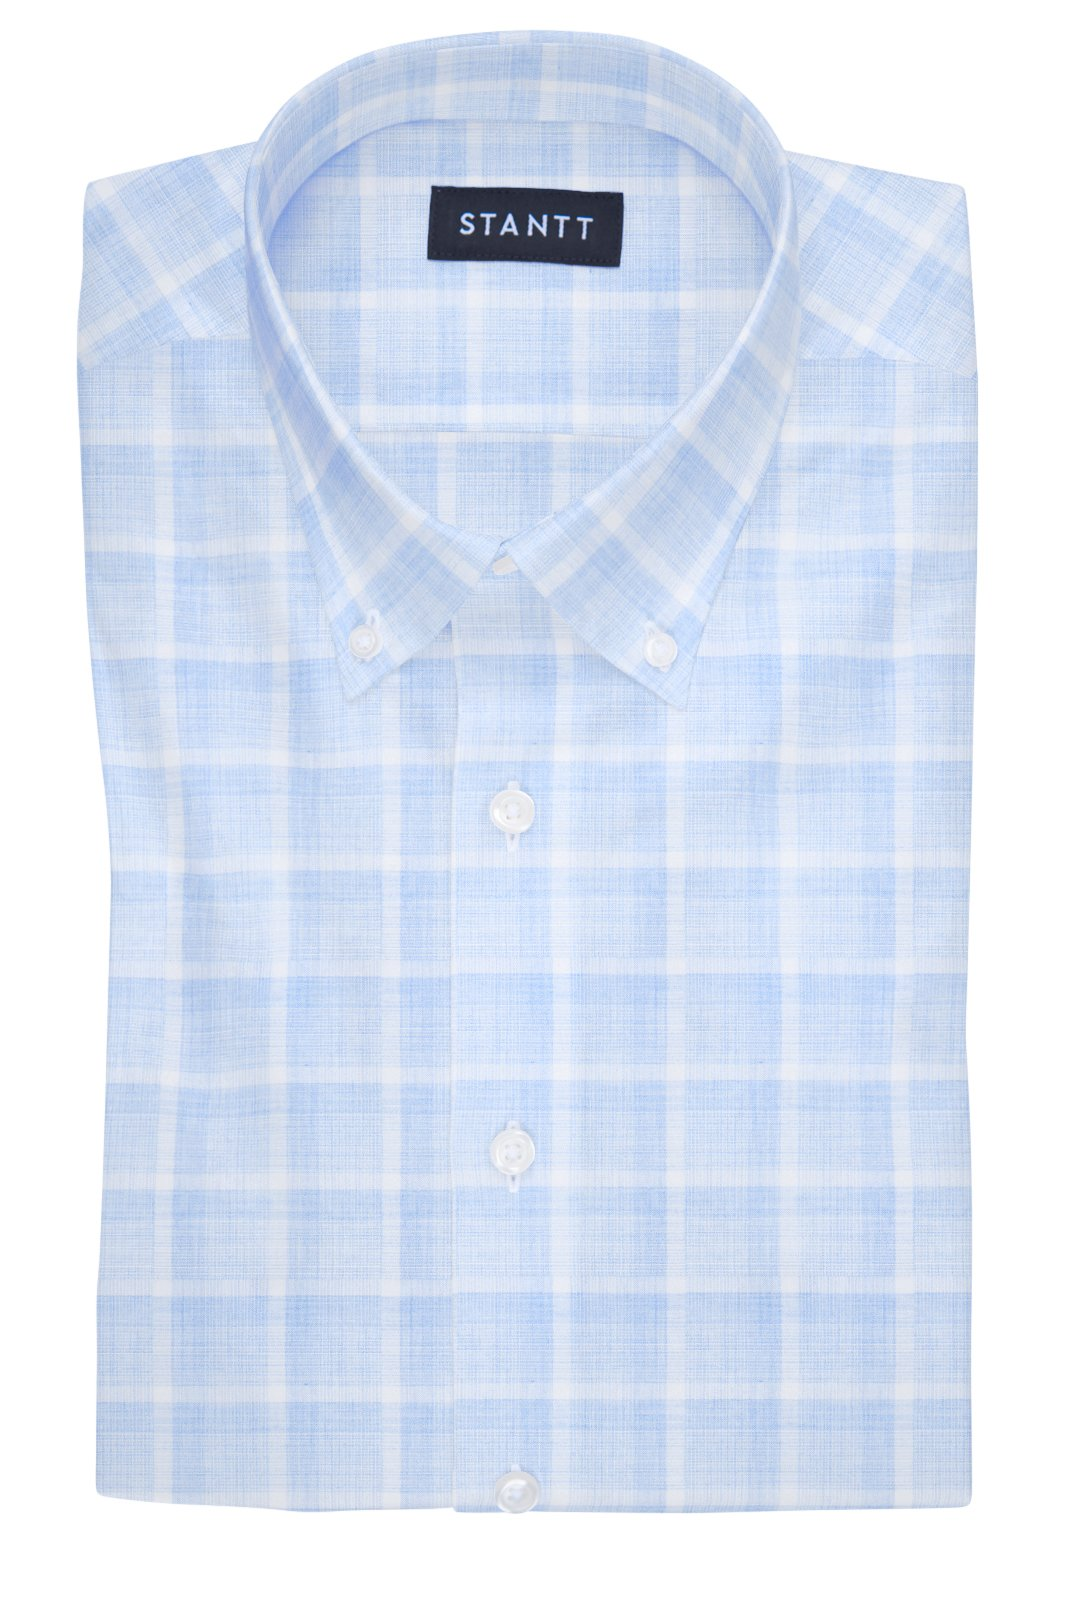 Melange Blue Web Check: Button-Down Collar, Barrel Cuff